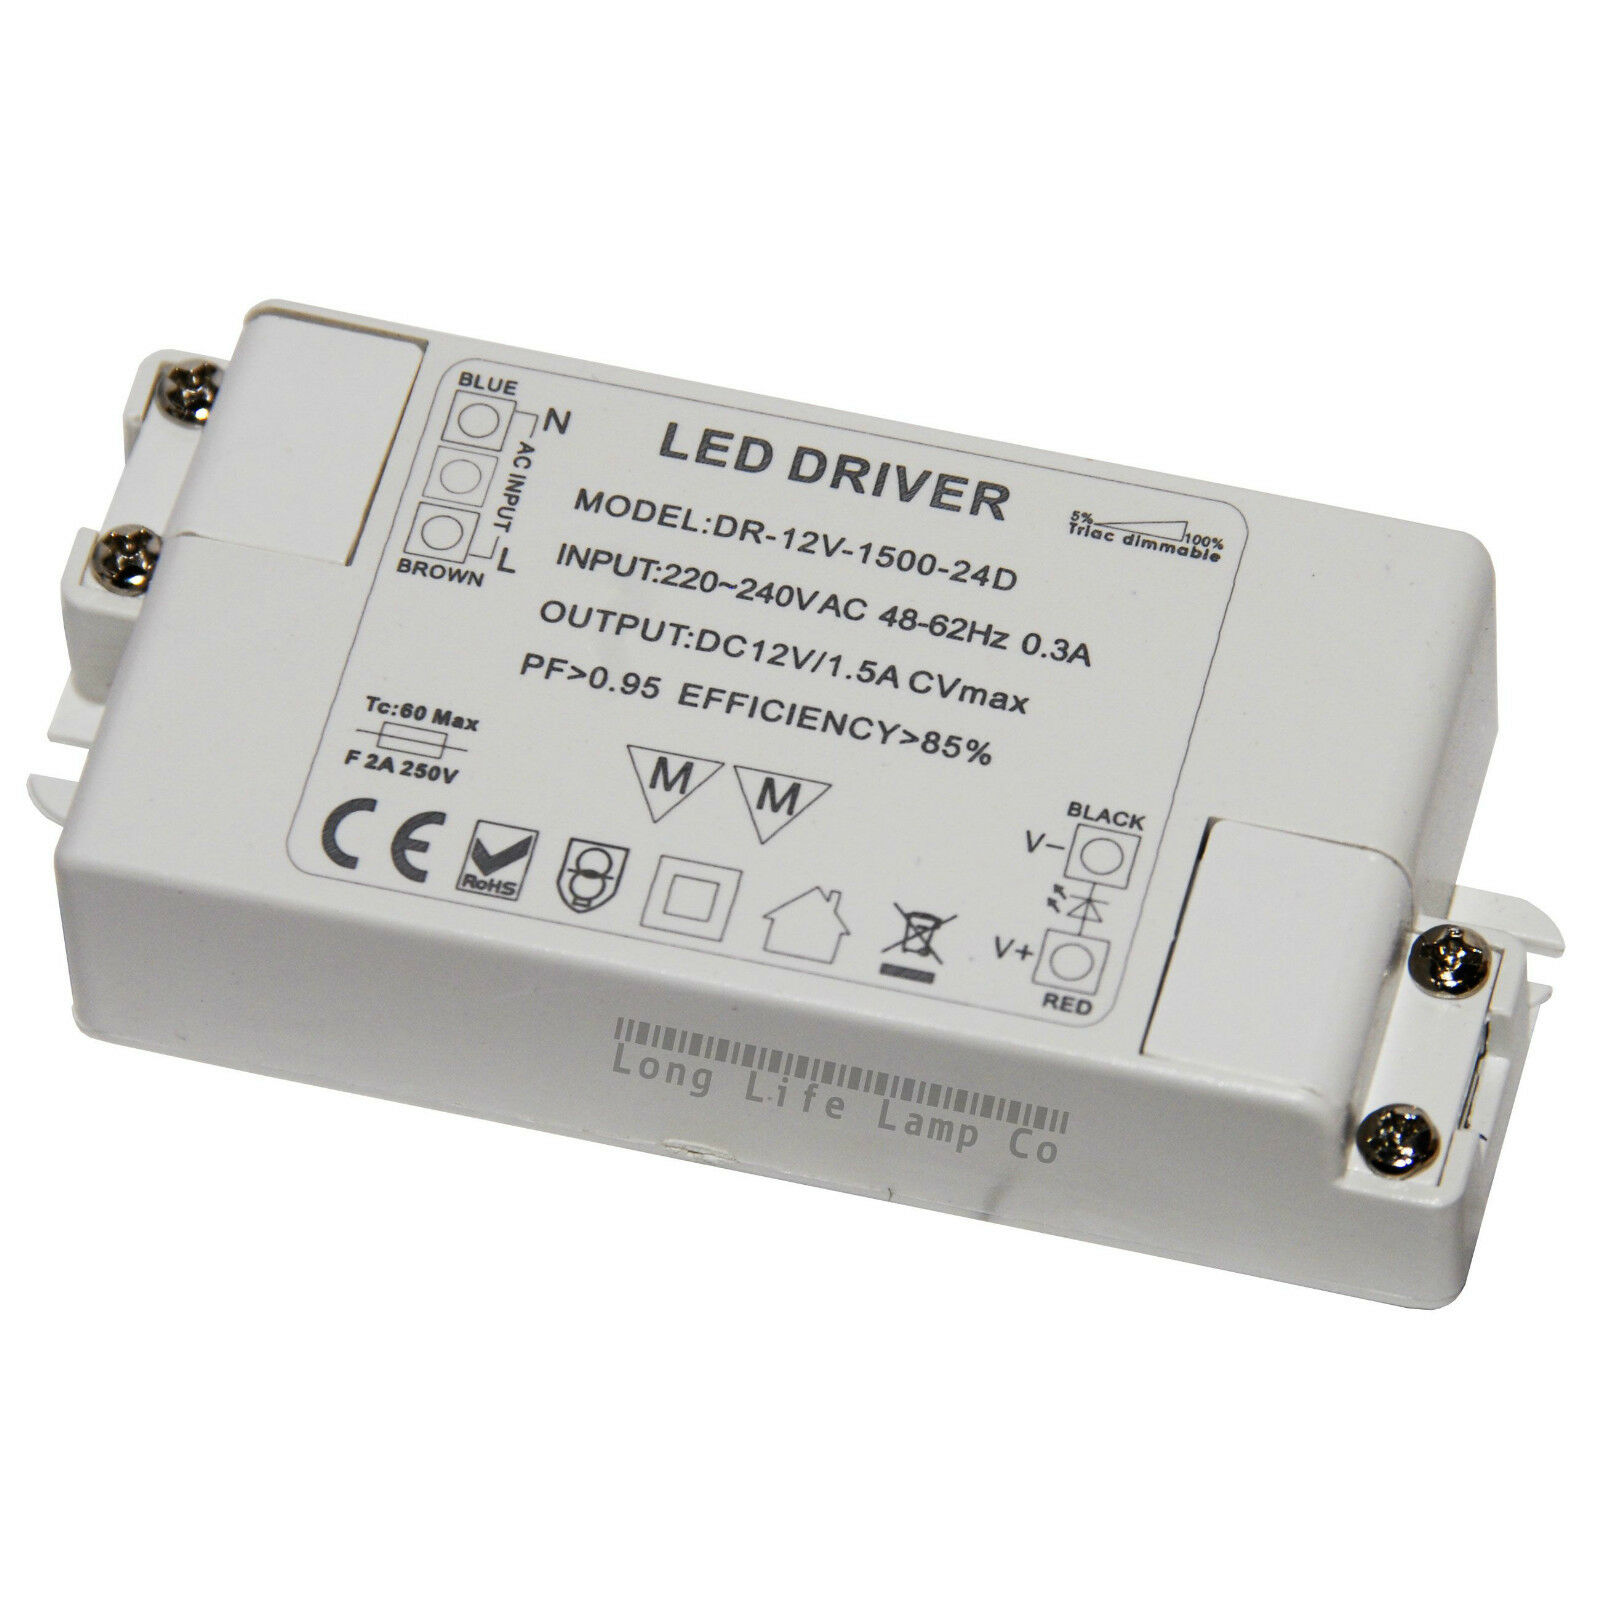 Mr16 Led Transformer Bunnings: Dimmable LED Driver Power Supply Transformer 240V-DC12V